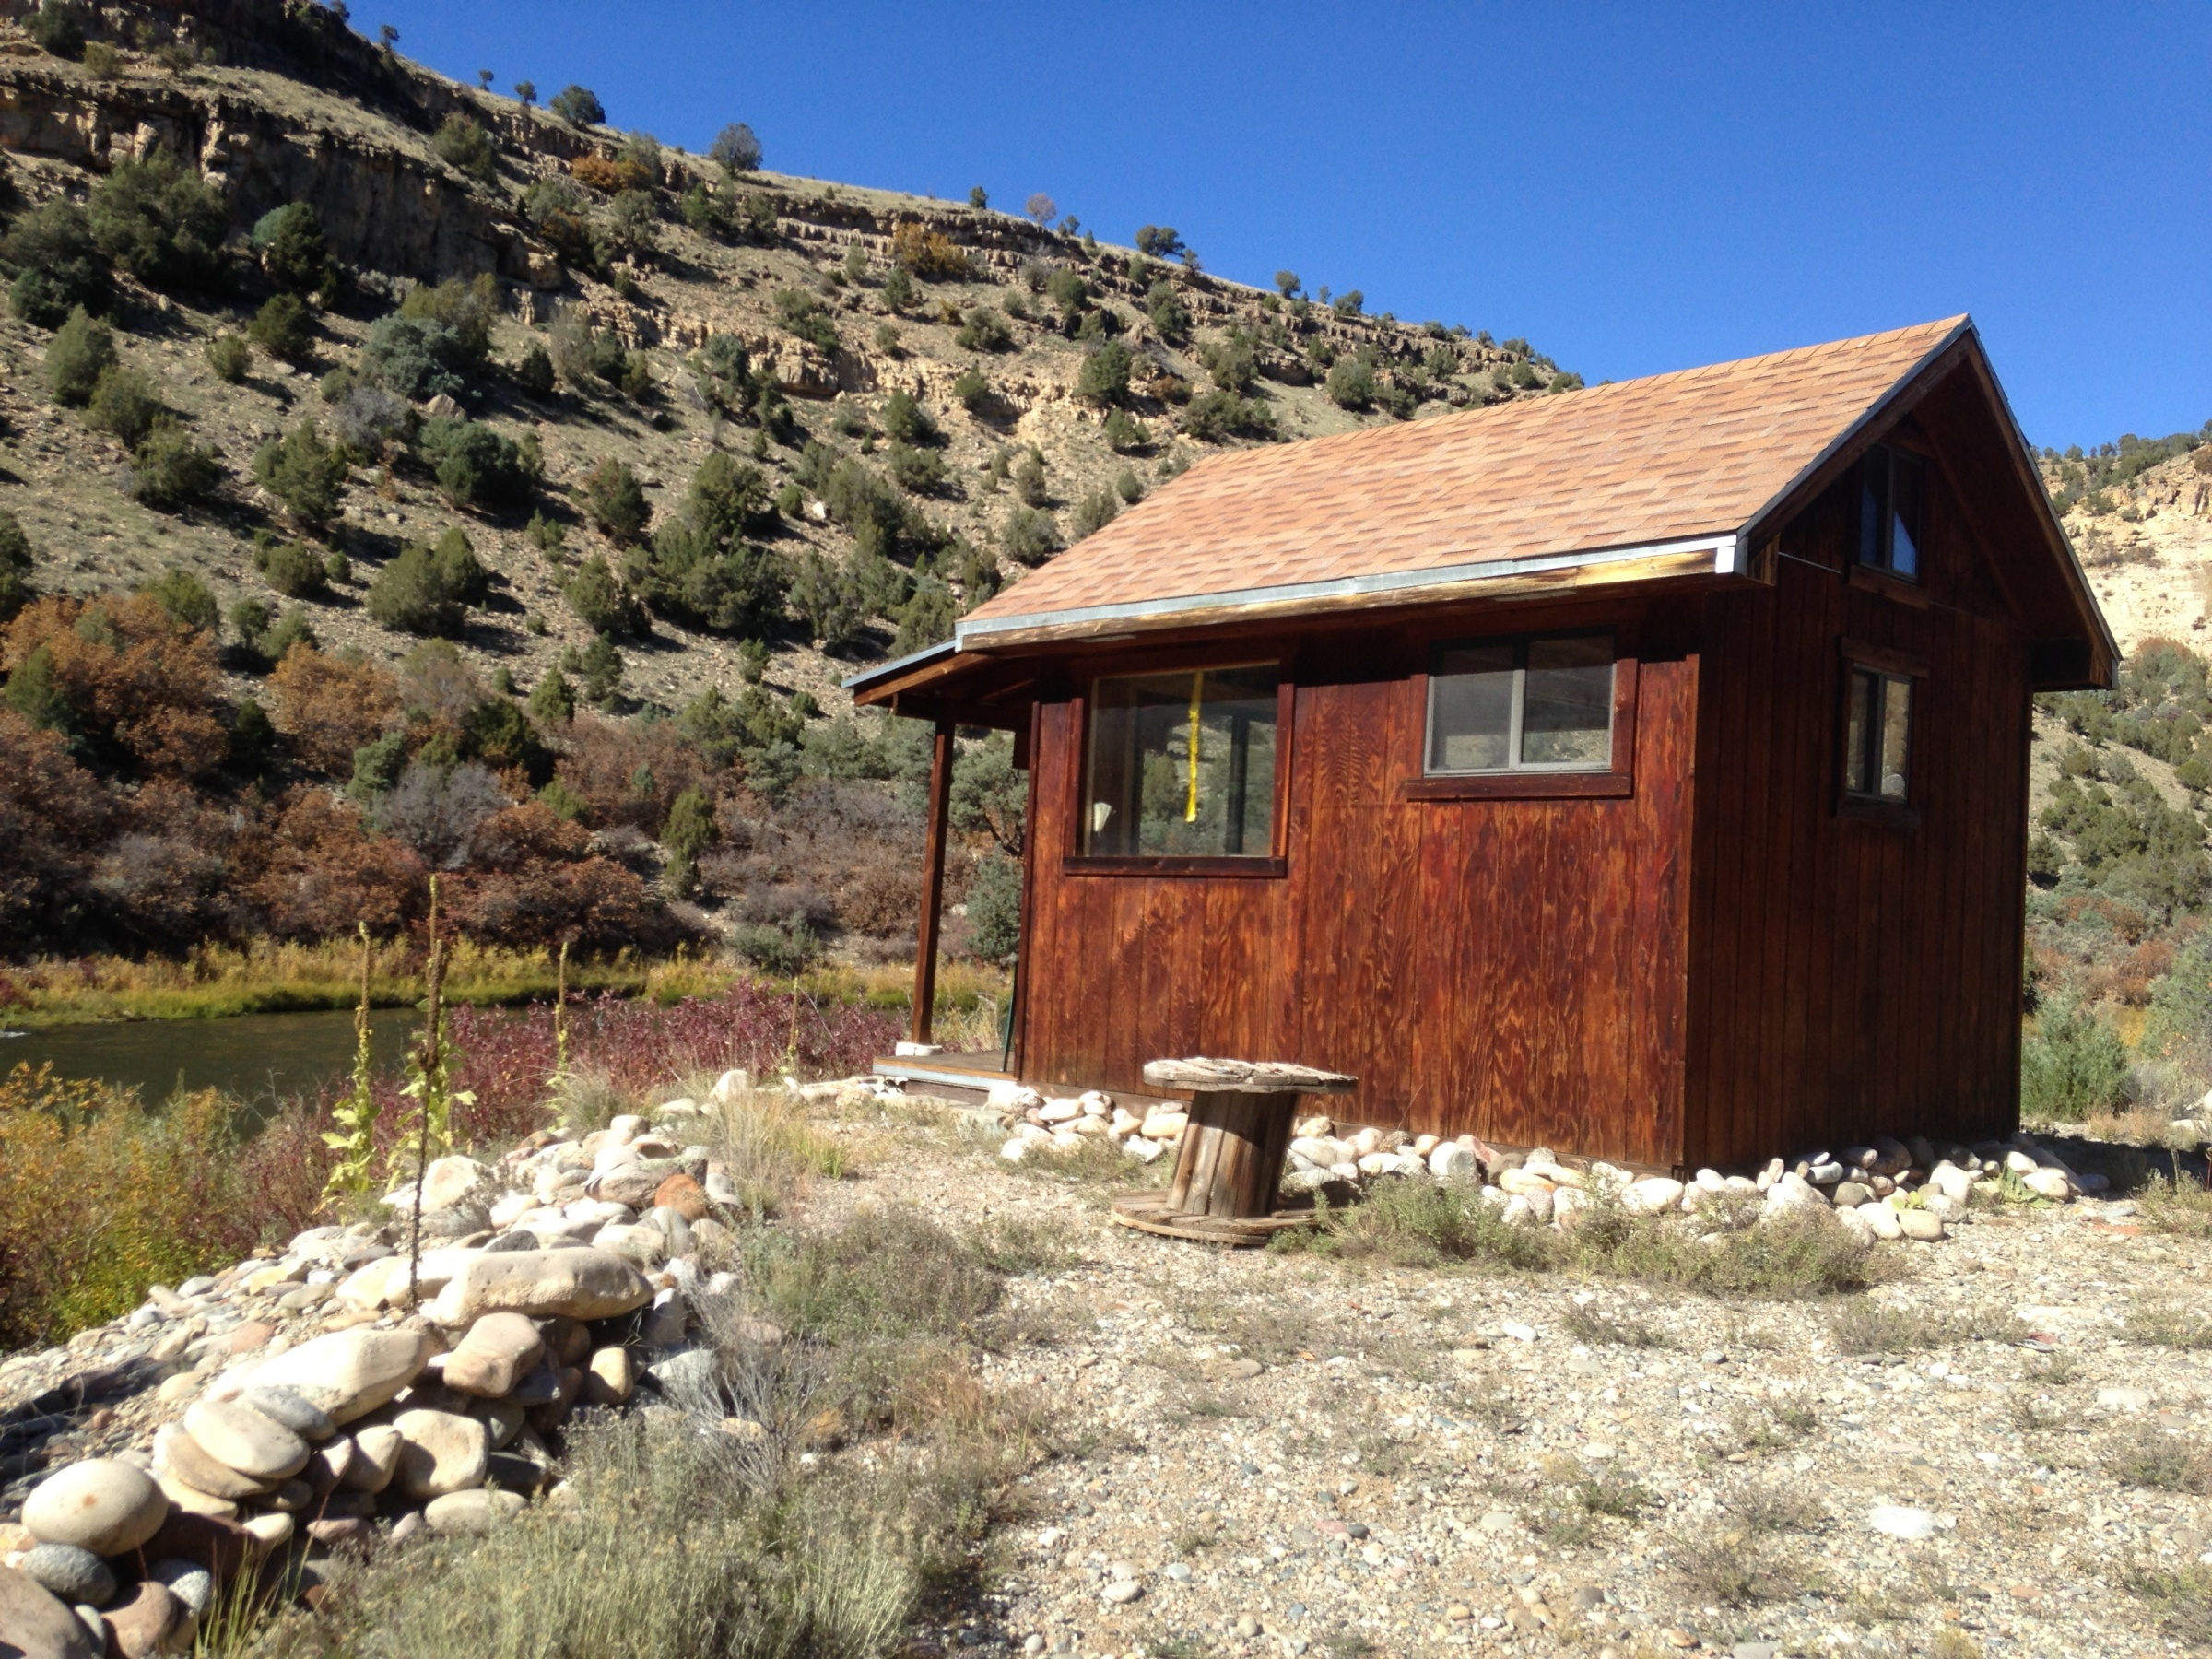 Click image for larger version  Name:cabin.jpg Views:152 Size:1.72 MB ID:10178